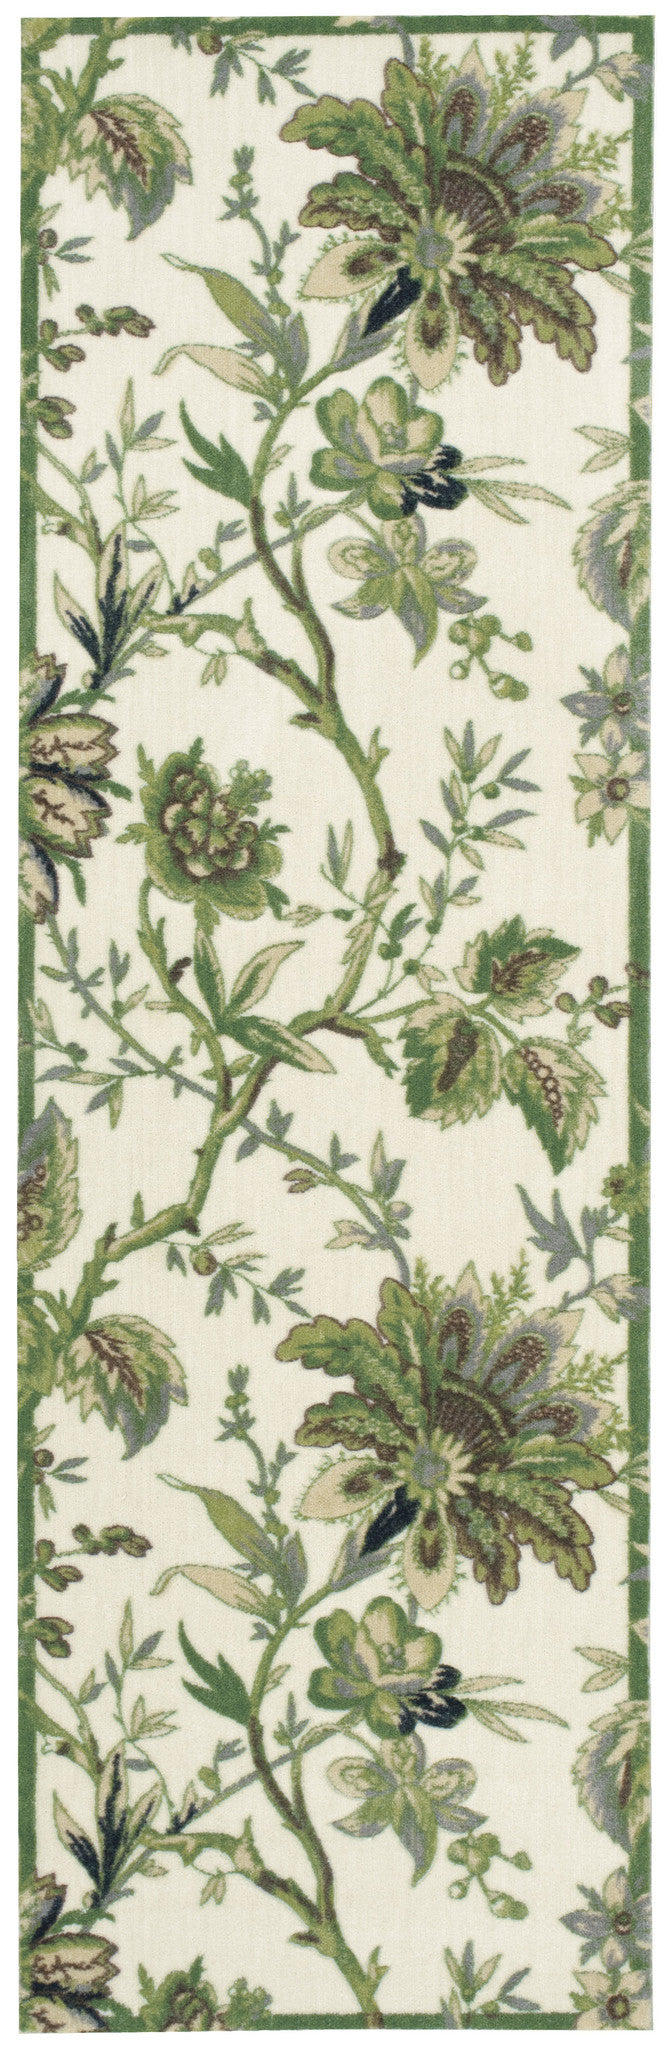 Waverly Artisanal Delight Felicite Leaf Area Rug By Nourison WAD06 LEAF